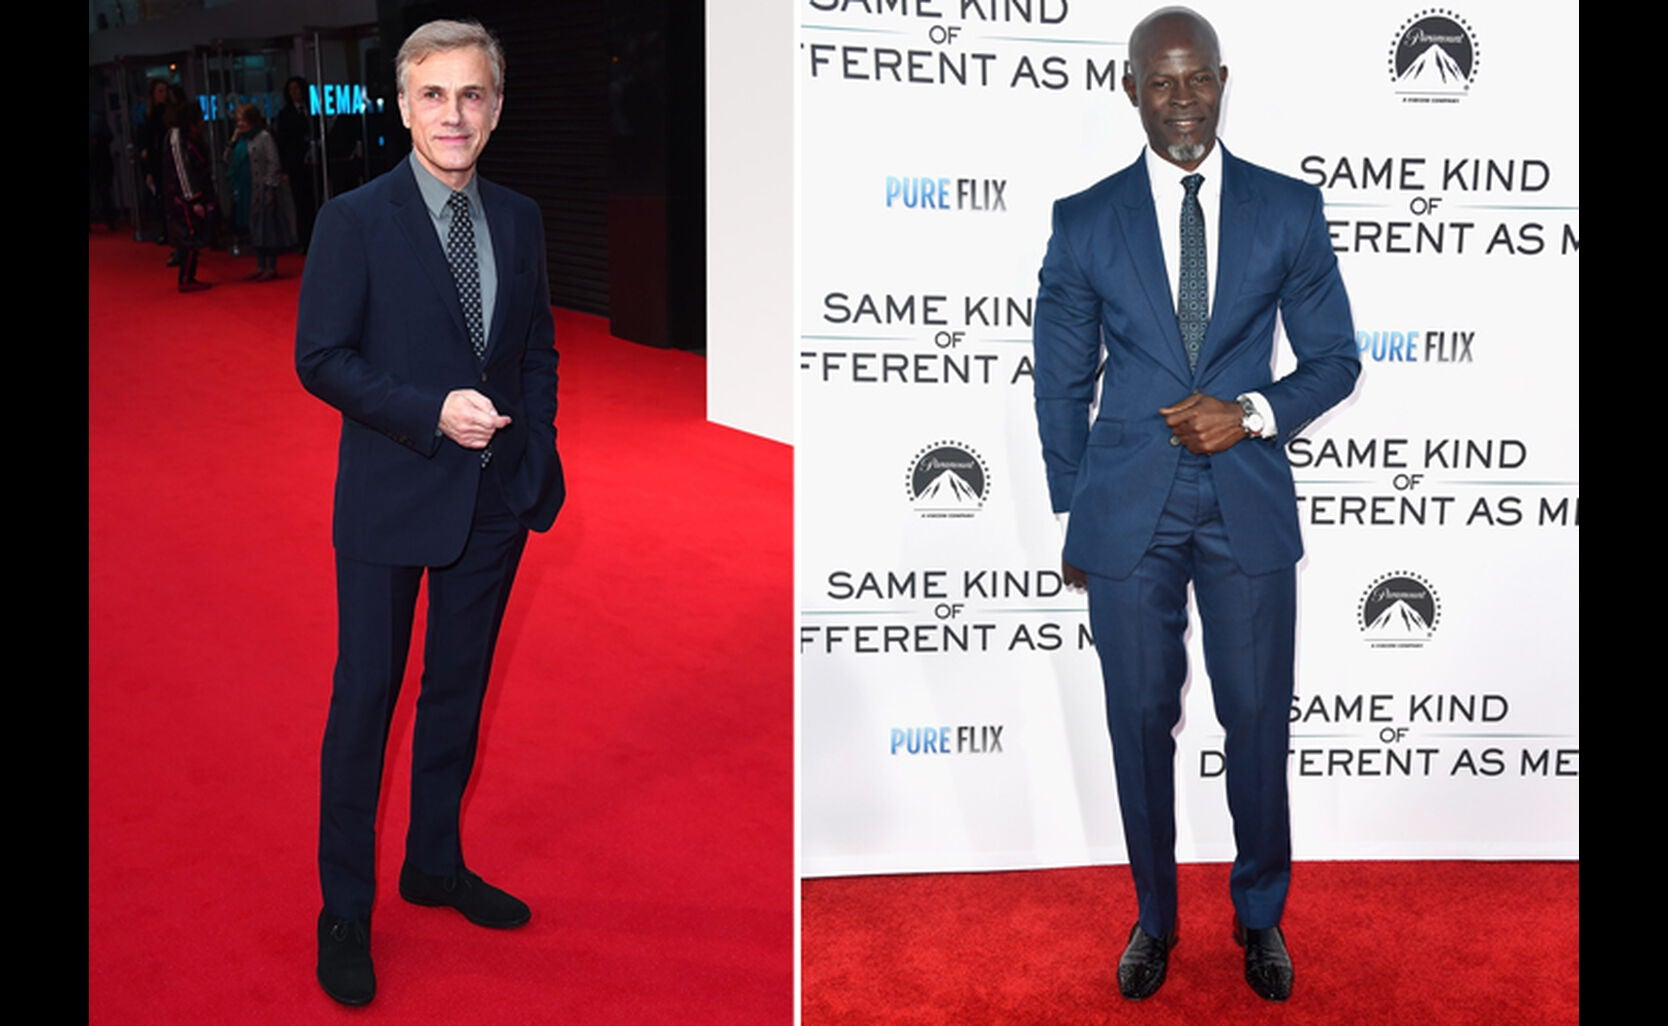 Christoph Waltz and Djimon Hounsou